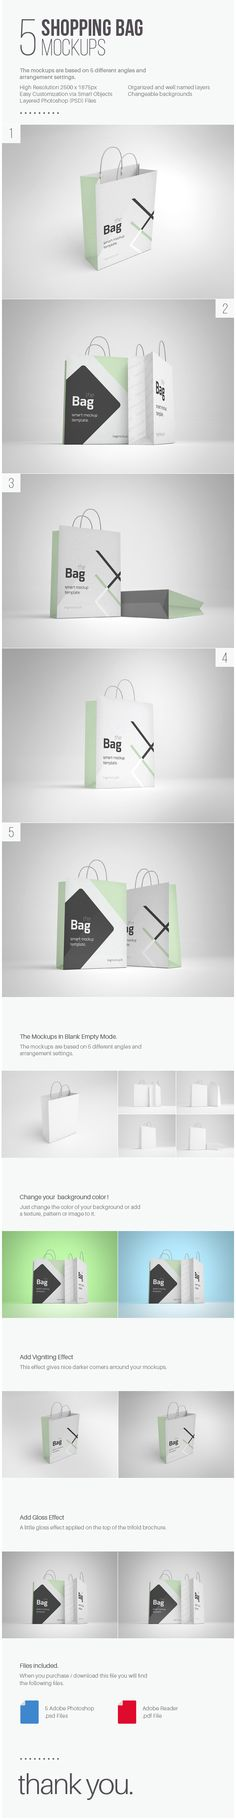 Buy 5 Shopping Bag Mockups by on GraphicRiver. 5 Premium shopping bag mockups that you can easily edit through photoshop smart objects, add styles, colors and effec. Packaging Design, Branding Design, Design Digital, Bag Mockup, Mockup Templates, Tool Design, Bag Design, Presentation Design, Graphic Design Inspiration